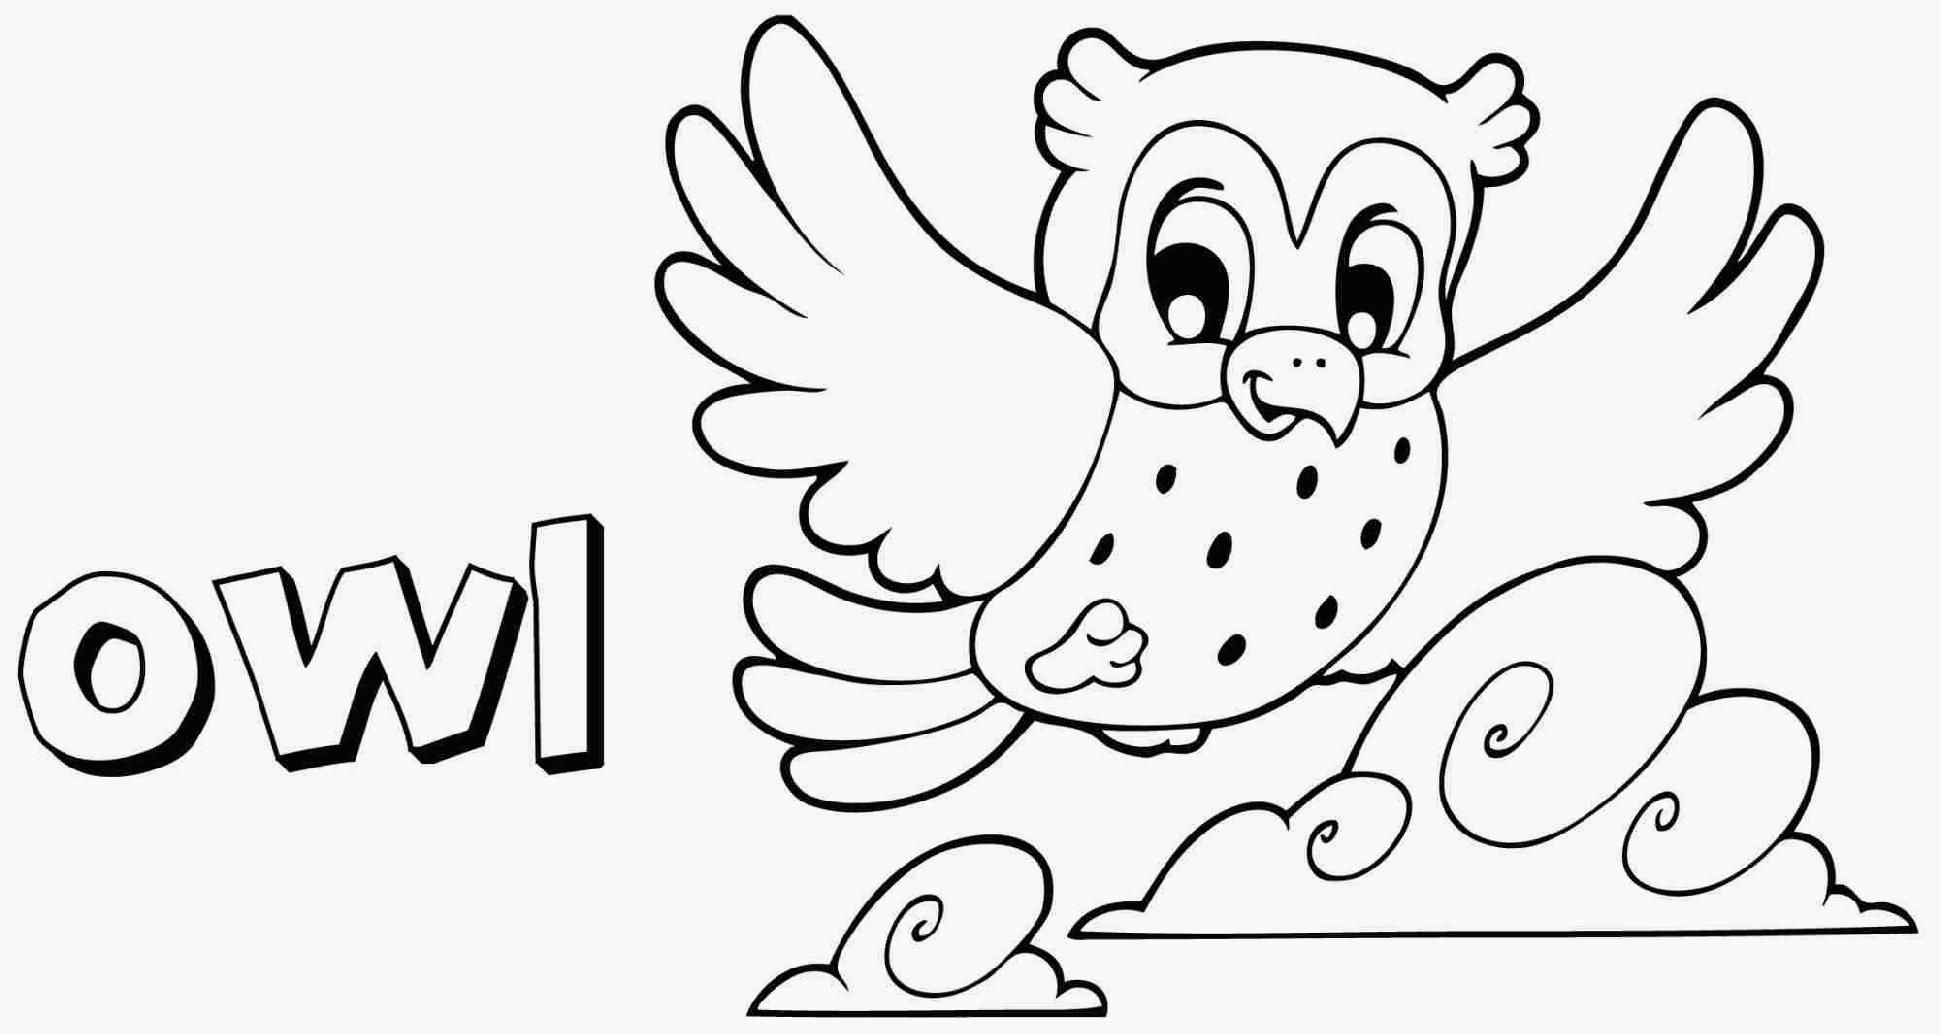 owl coloring pages for kids owl coloring pages for kids owl coloring for pages kids